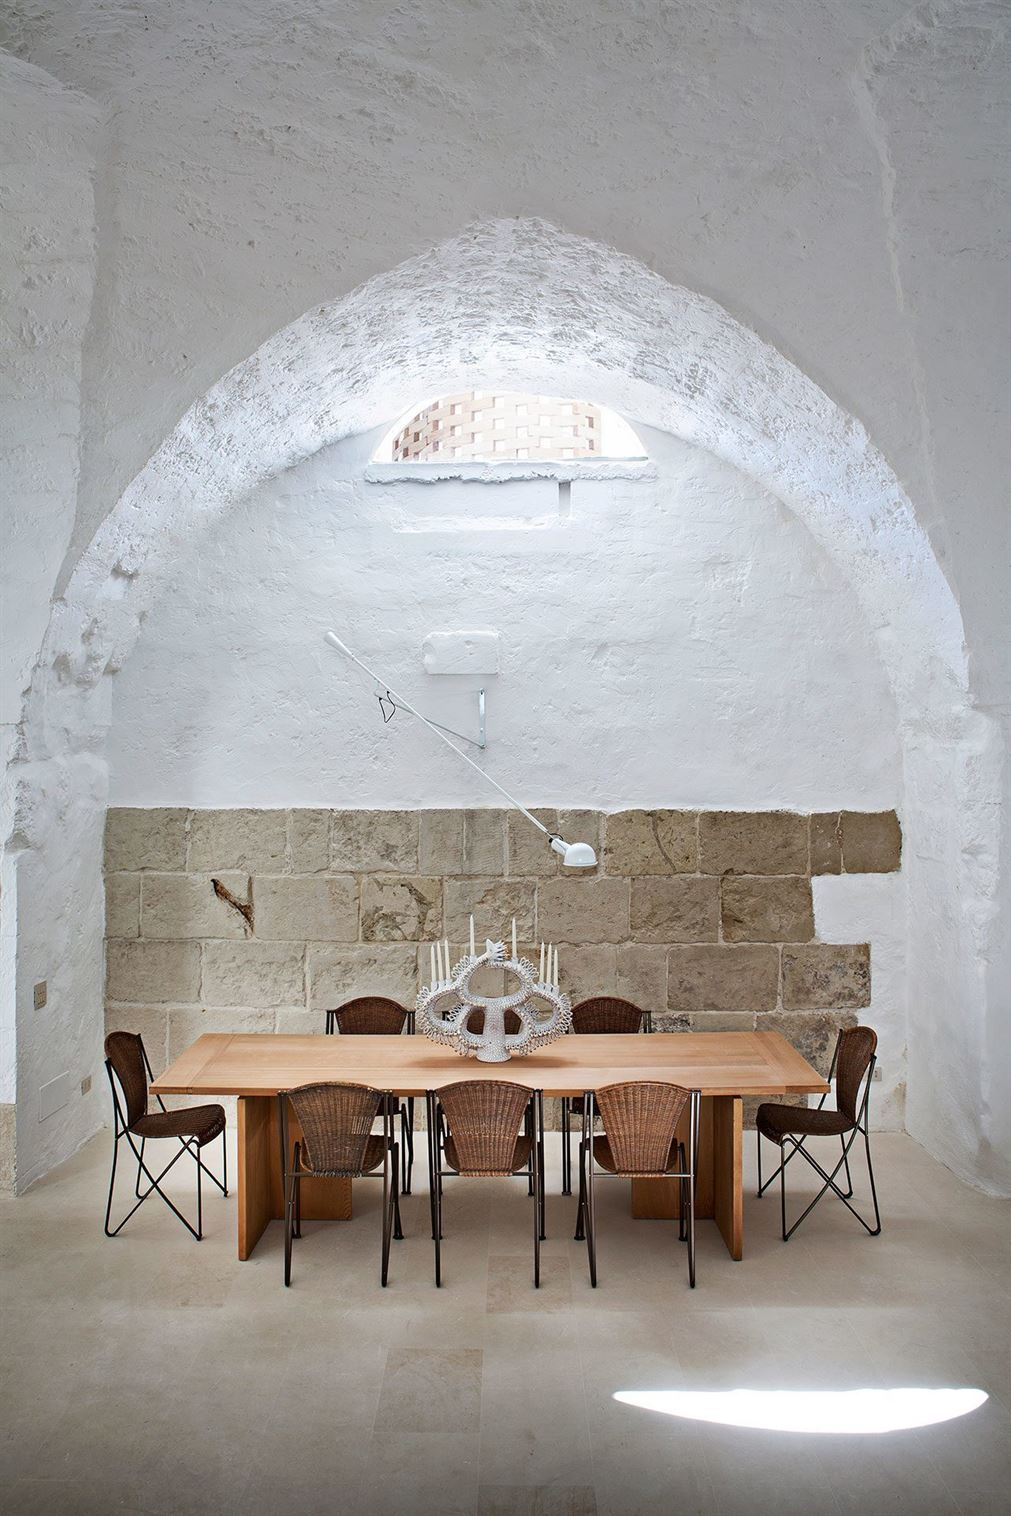 f6_palomba_serafini_house_salento_photo_francesco_bolis_yatzer